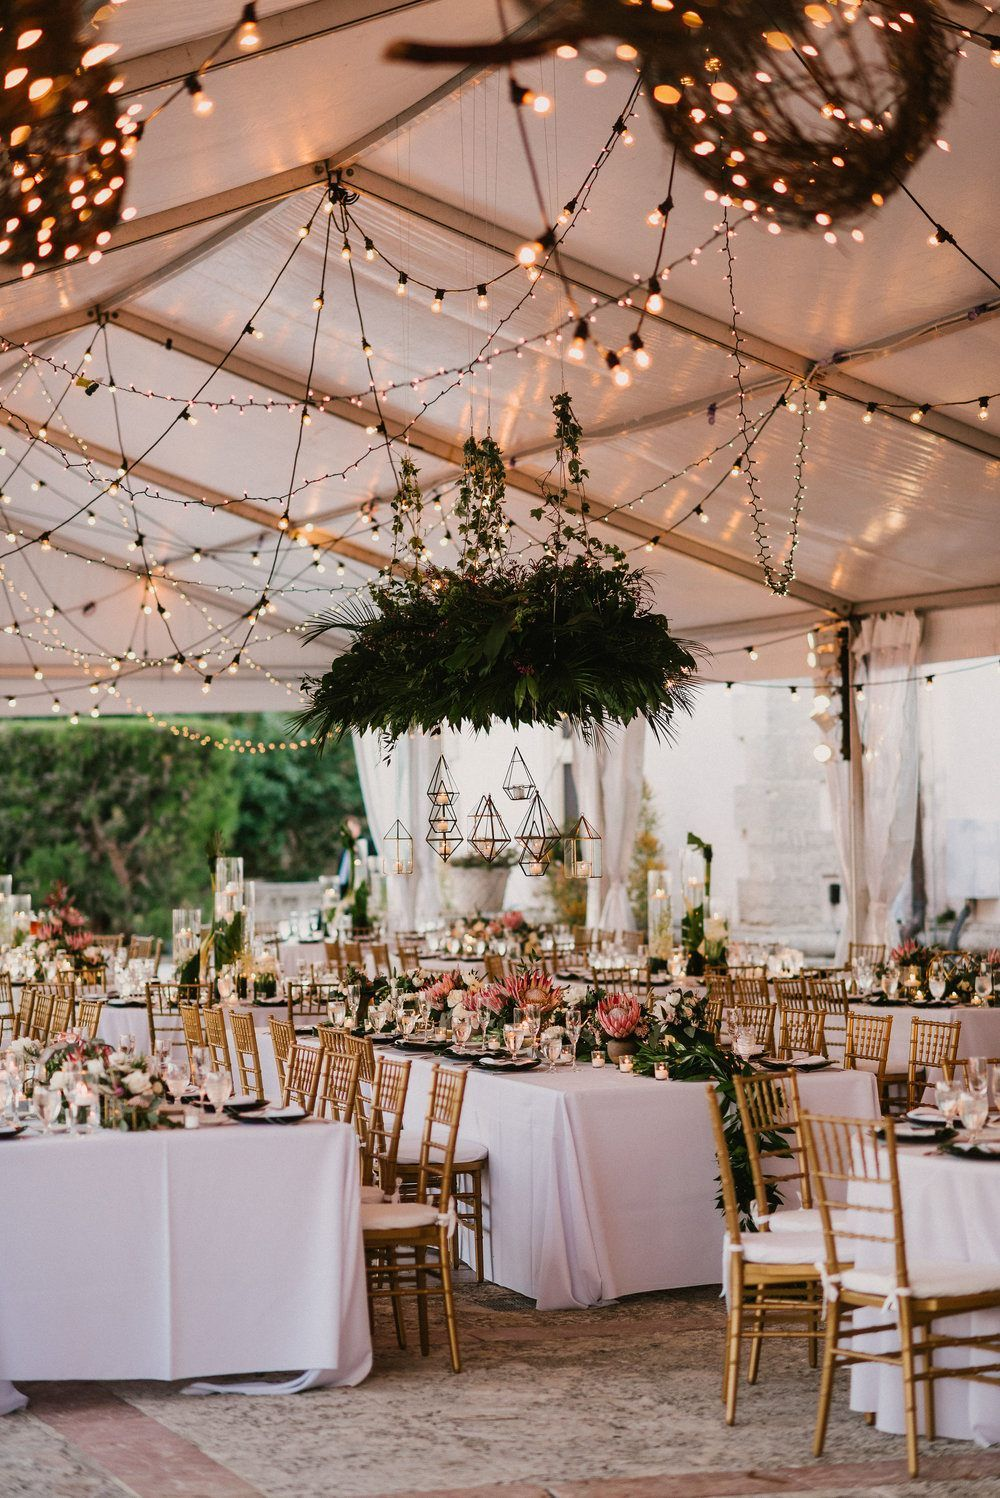 This Miami Wedding Glows Up With Reception Lantern Glory Modern Fashion Tropical Palm Fronds And Color Blocked Decor Elements Work Together To